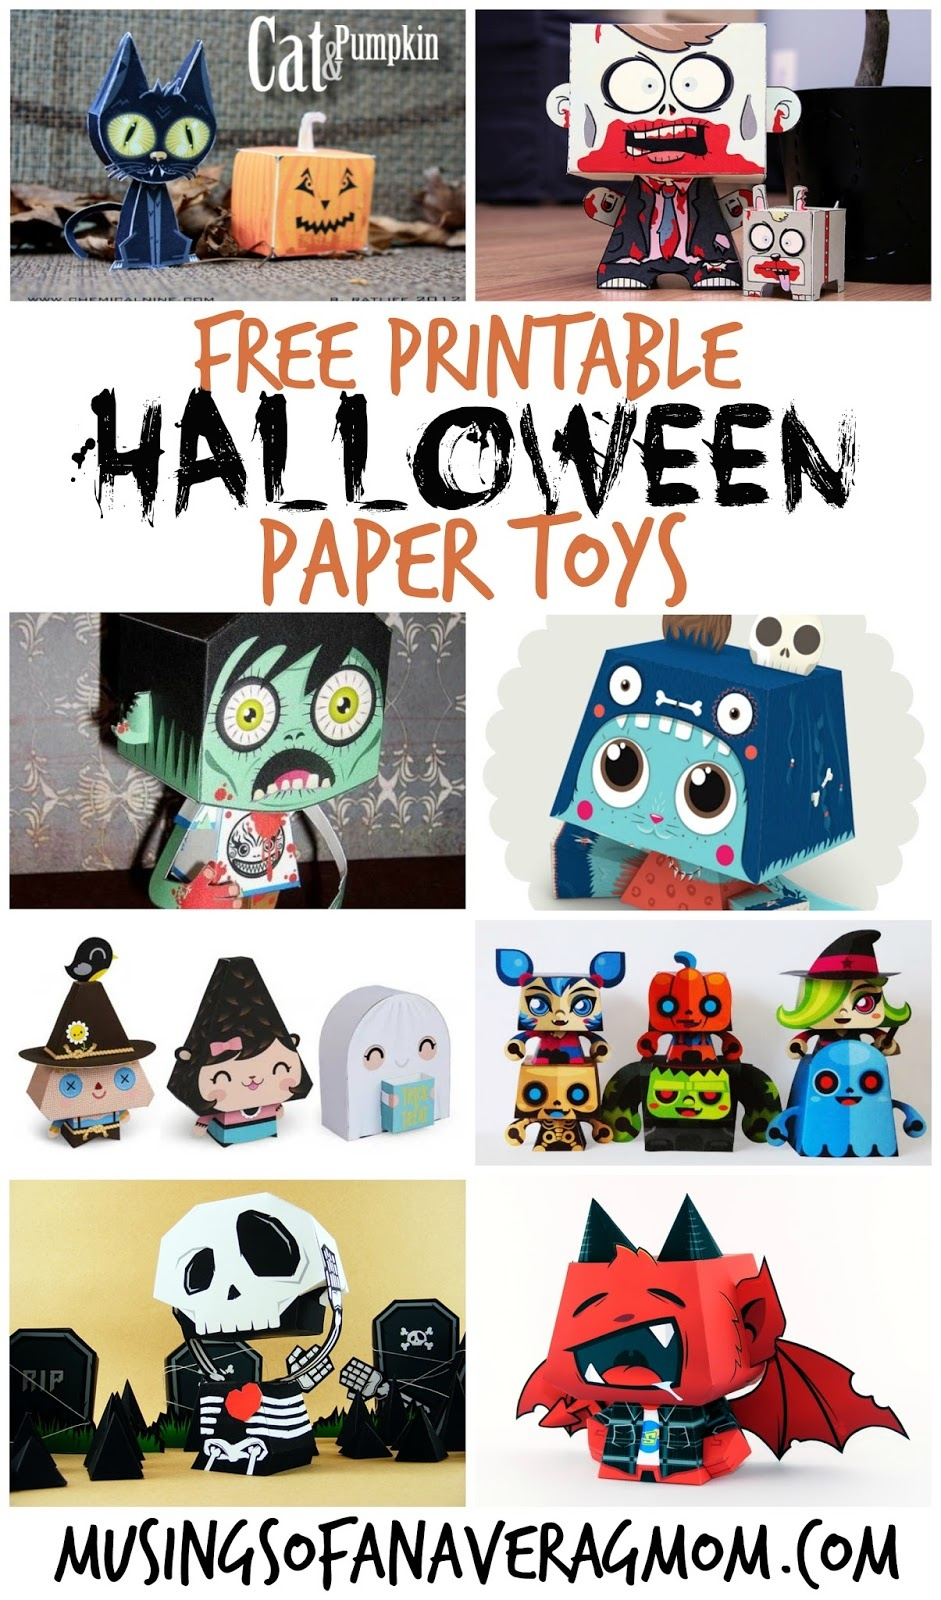 Musings Of An Average Mom: Halloween Paper Crafts - Free Printable Halloween Paper Crafts